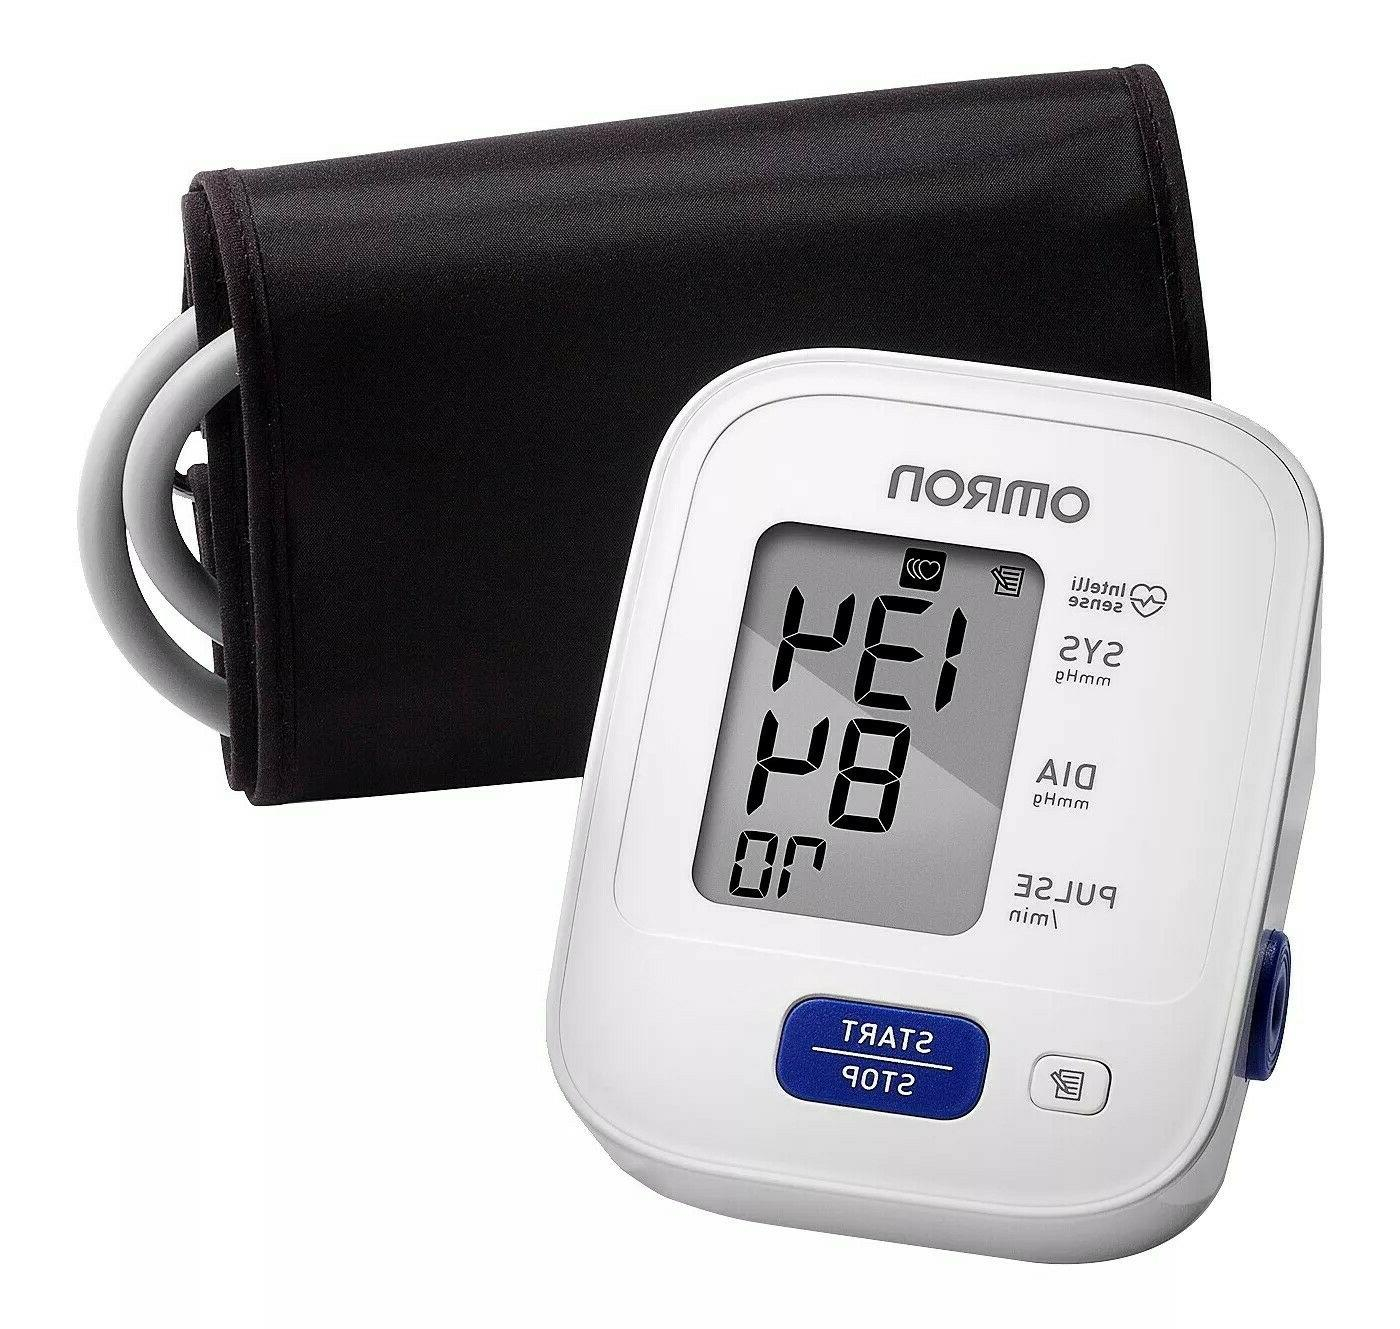 NEW Omron 3 Series Blood Pressure Monitor Cuff